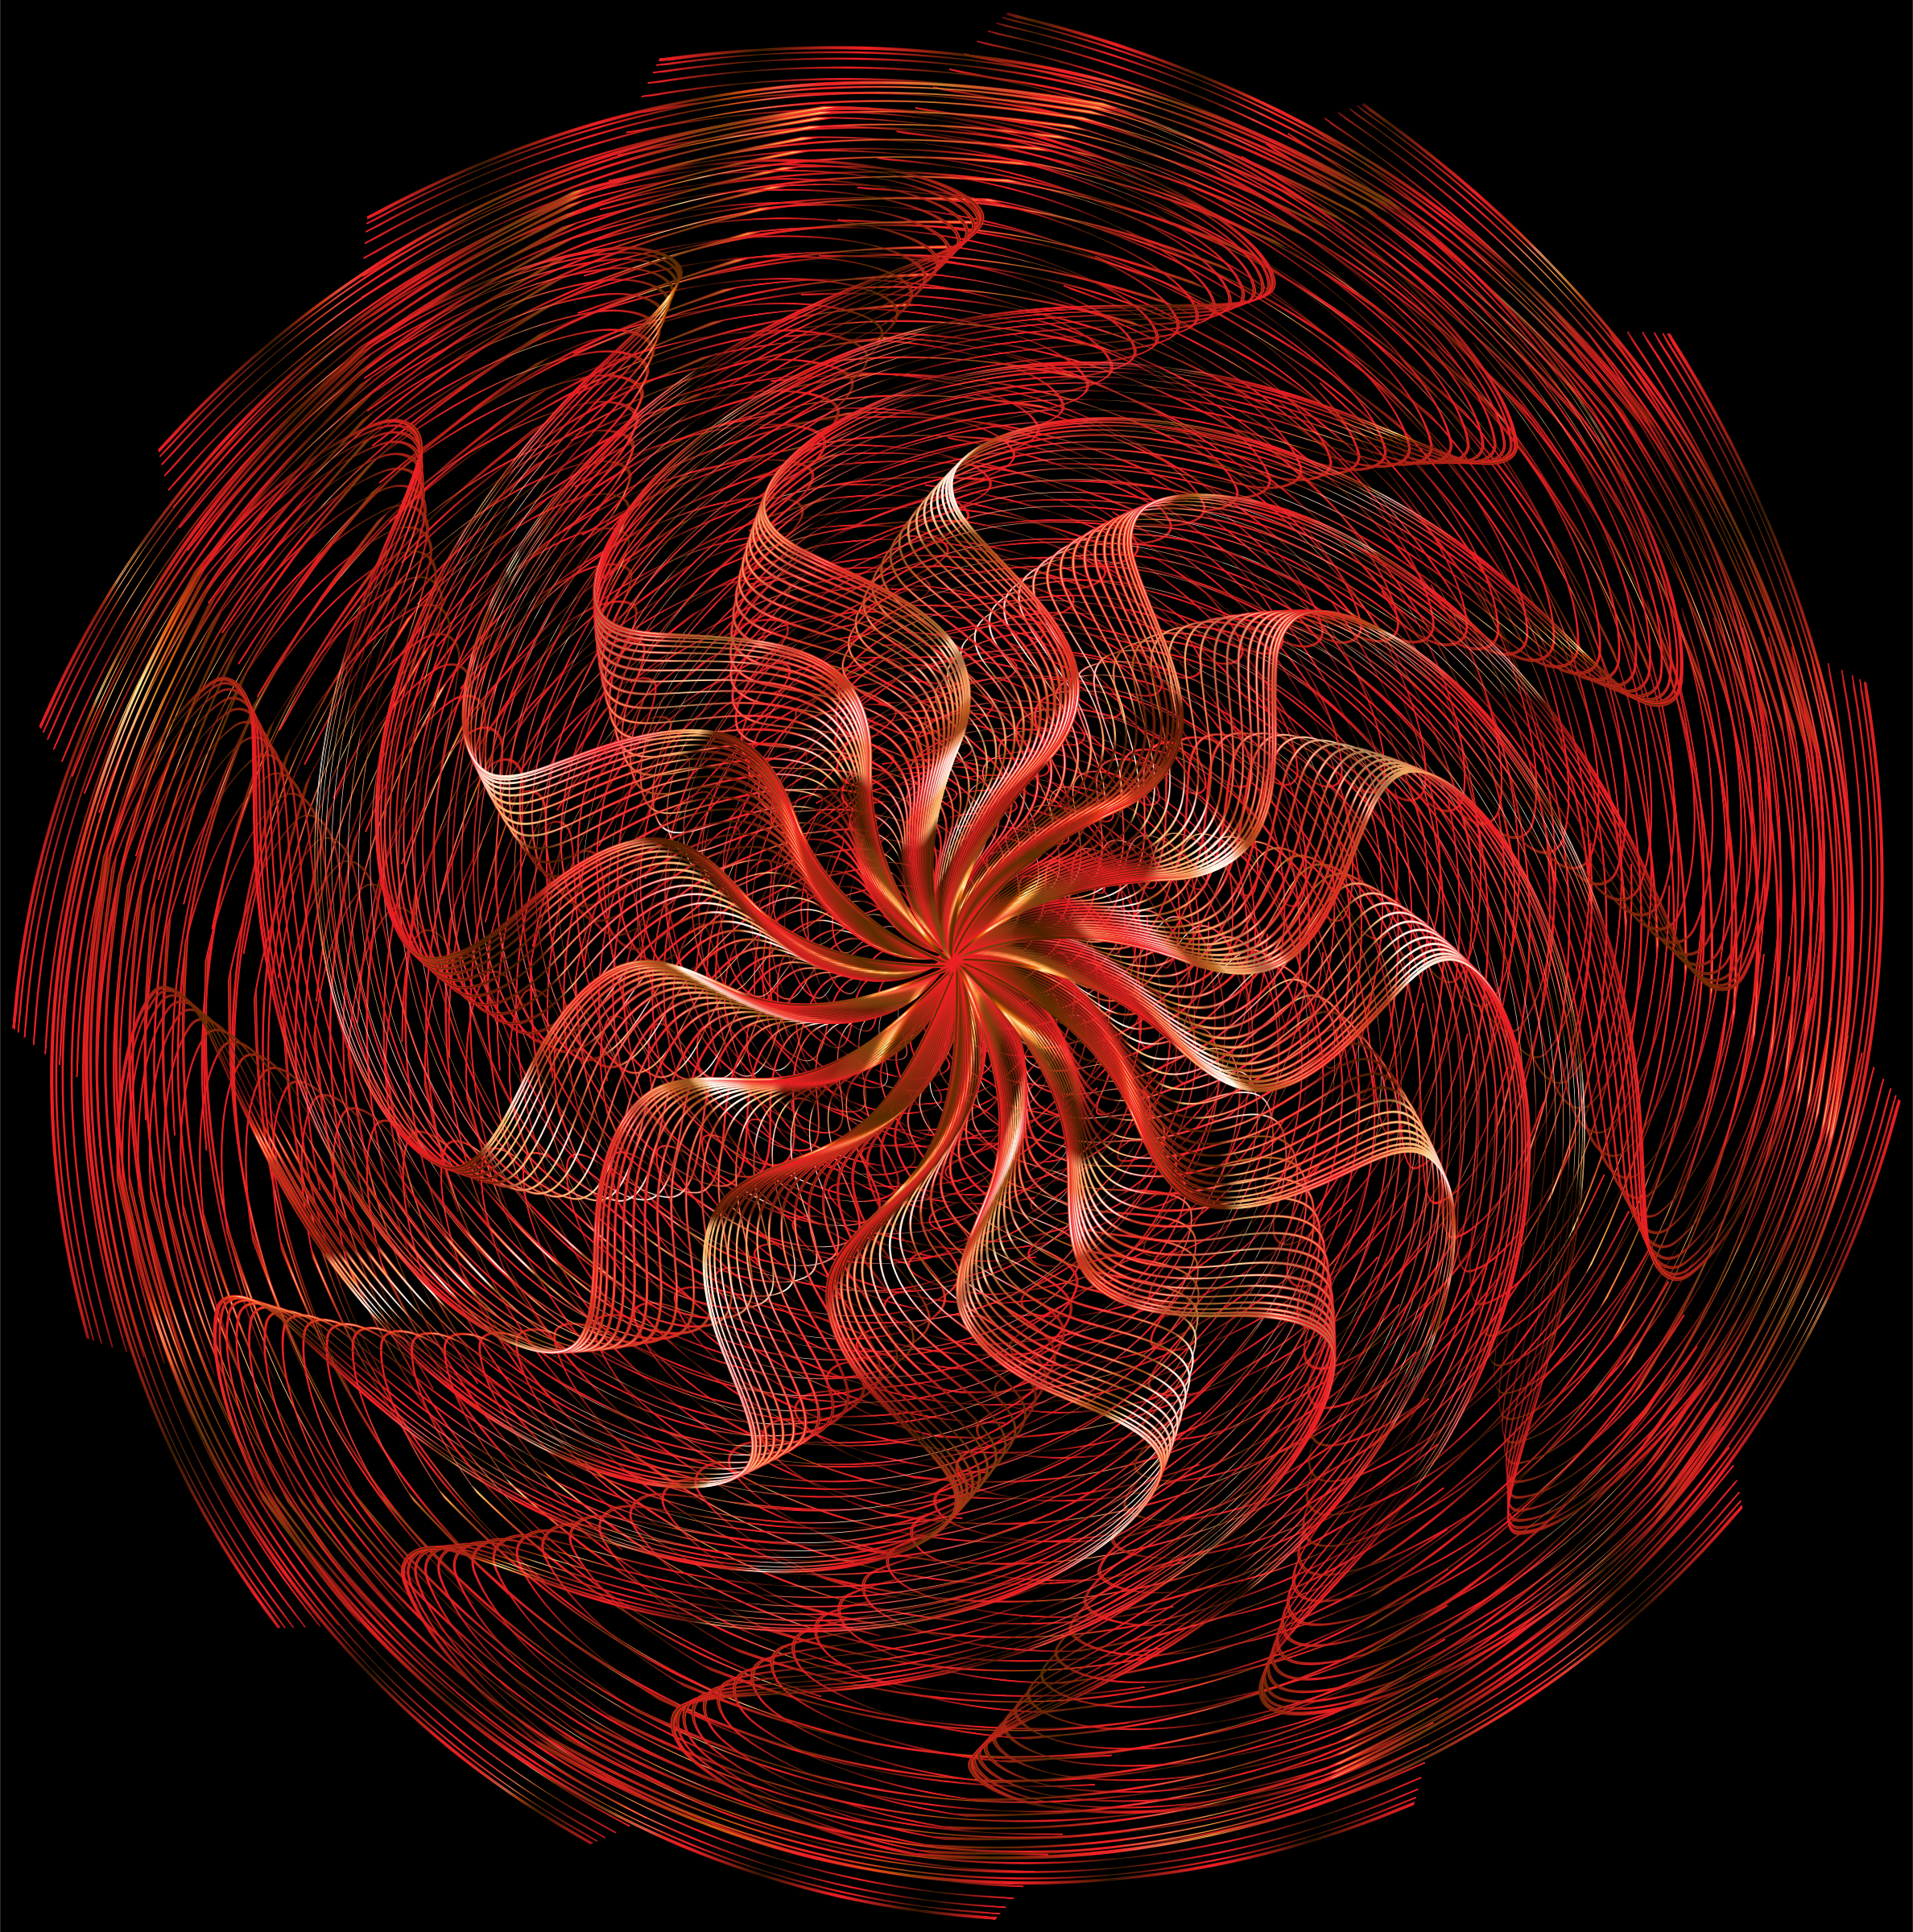 Colorful Wavy Vortex Line Art 11 by GDJ